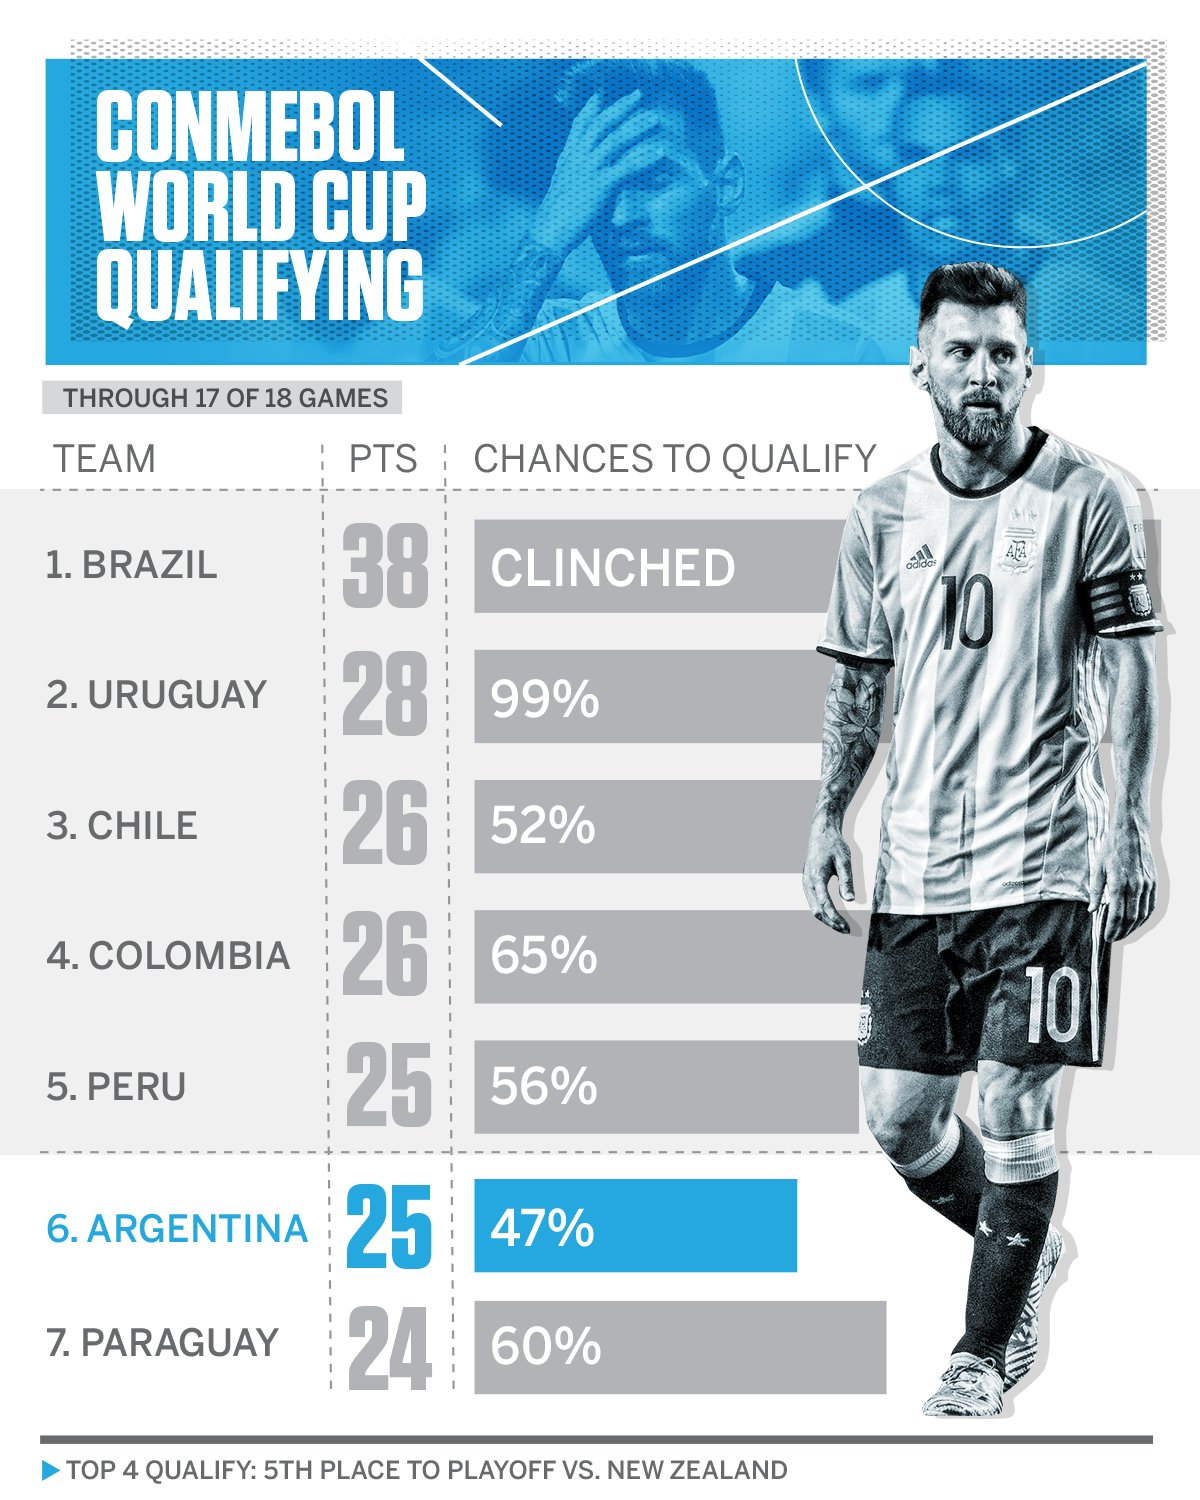 With one game left to play, the possibility of a World Cup without Lionel Messi and Argentina is very real. https://t.co/5aO3z65vsi